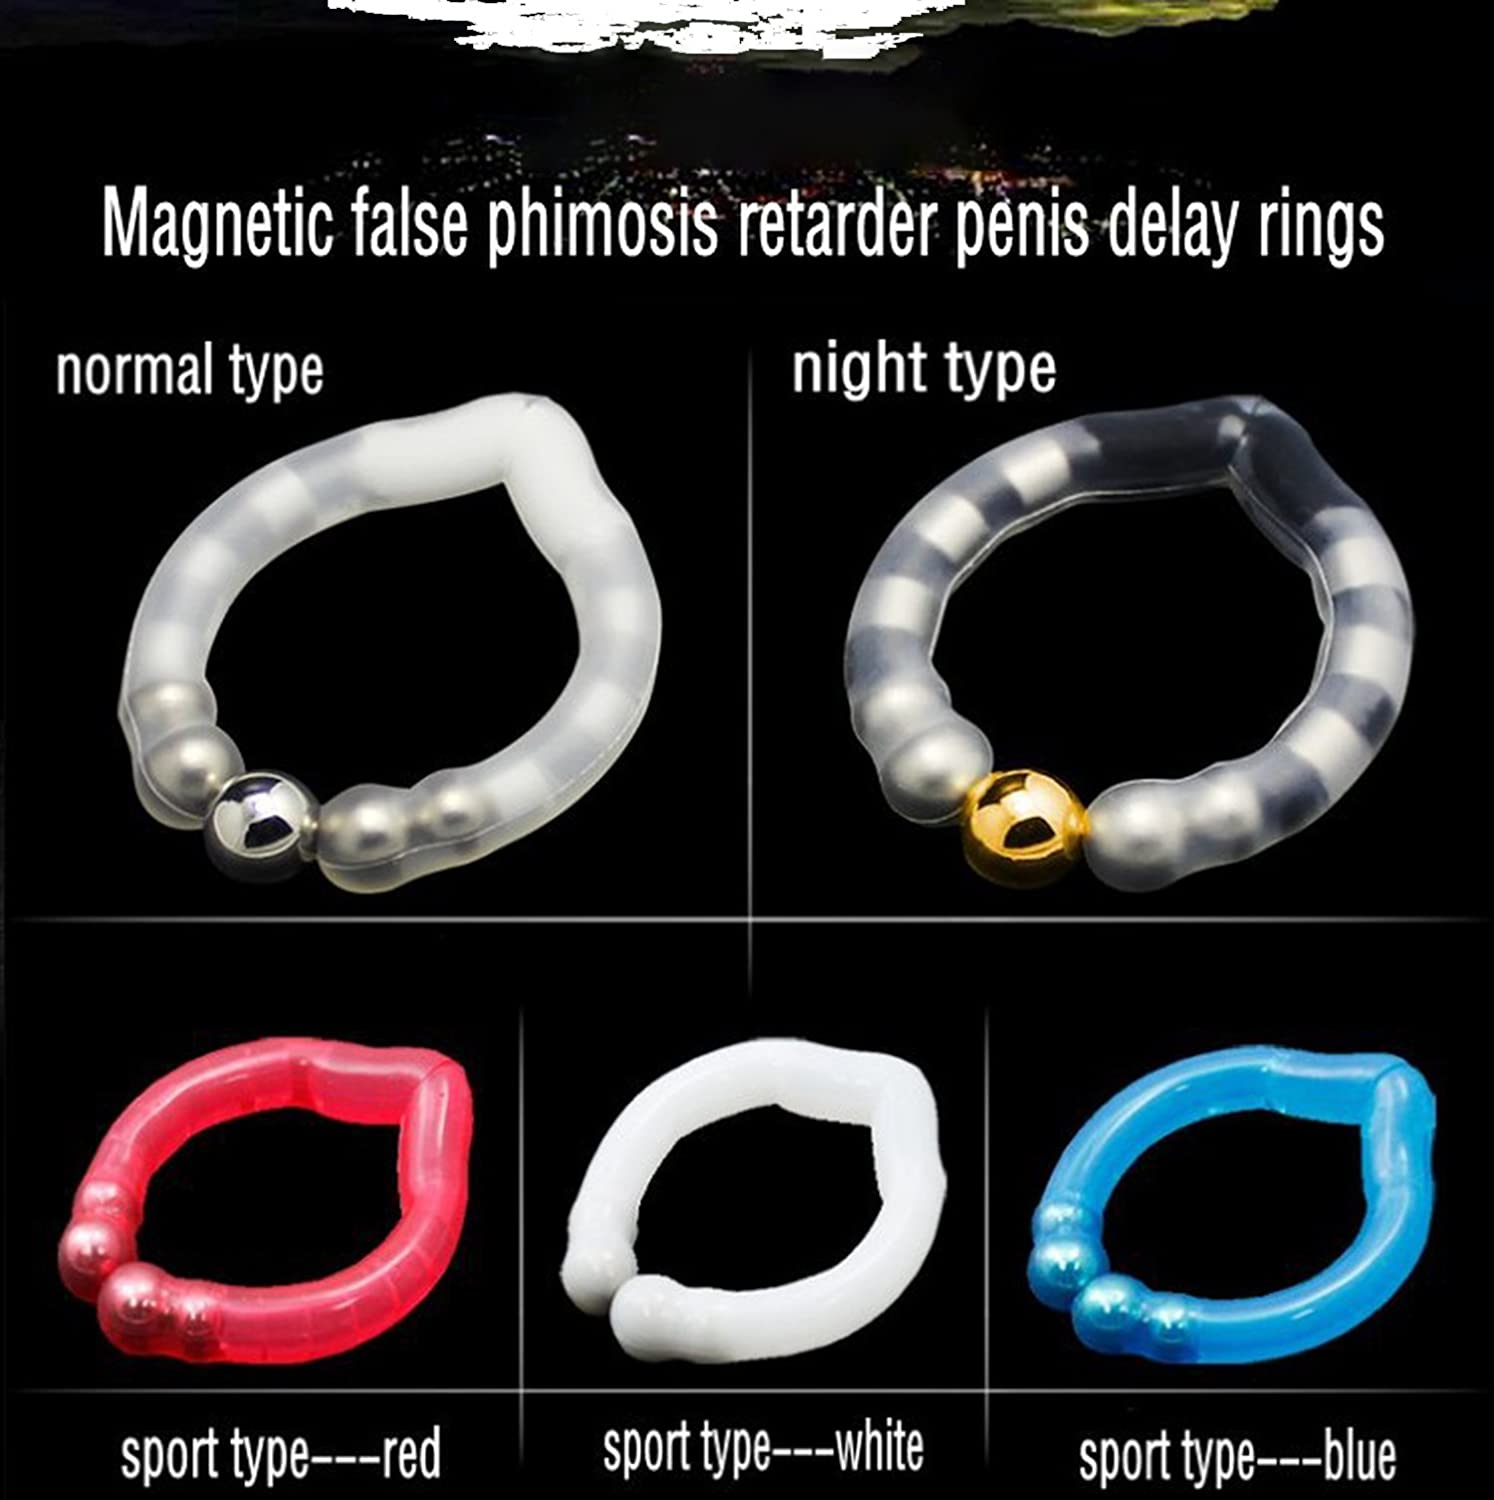 Amazon.com: tteuion Magnetic Ring False Phimosis retarder Penis Ring for  delay Ejaculation Adjustable Cock Rings Sex Products,Without Retail Box:  Health ...